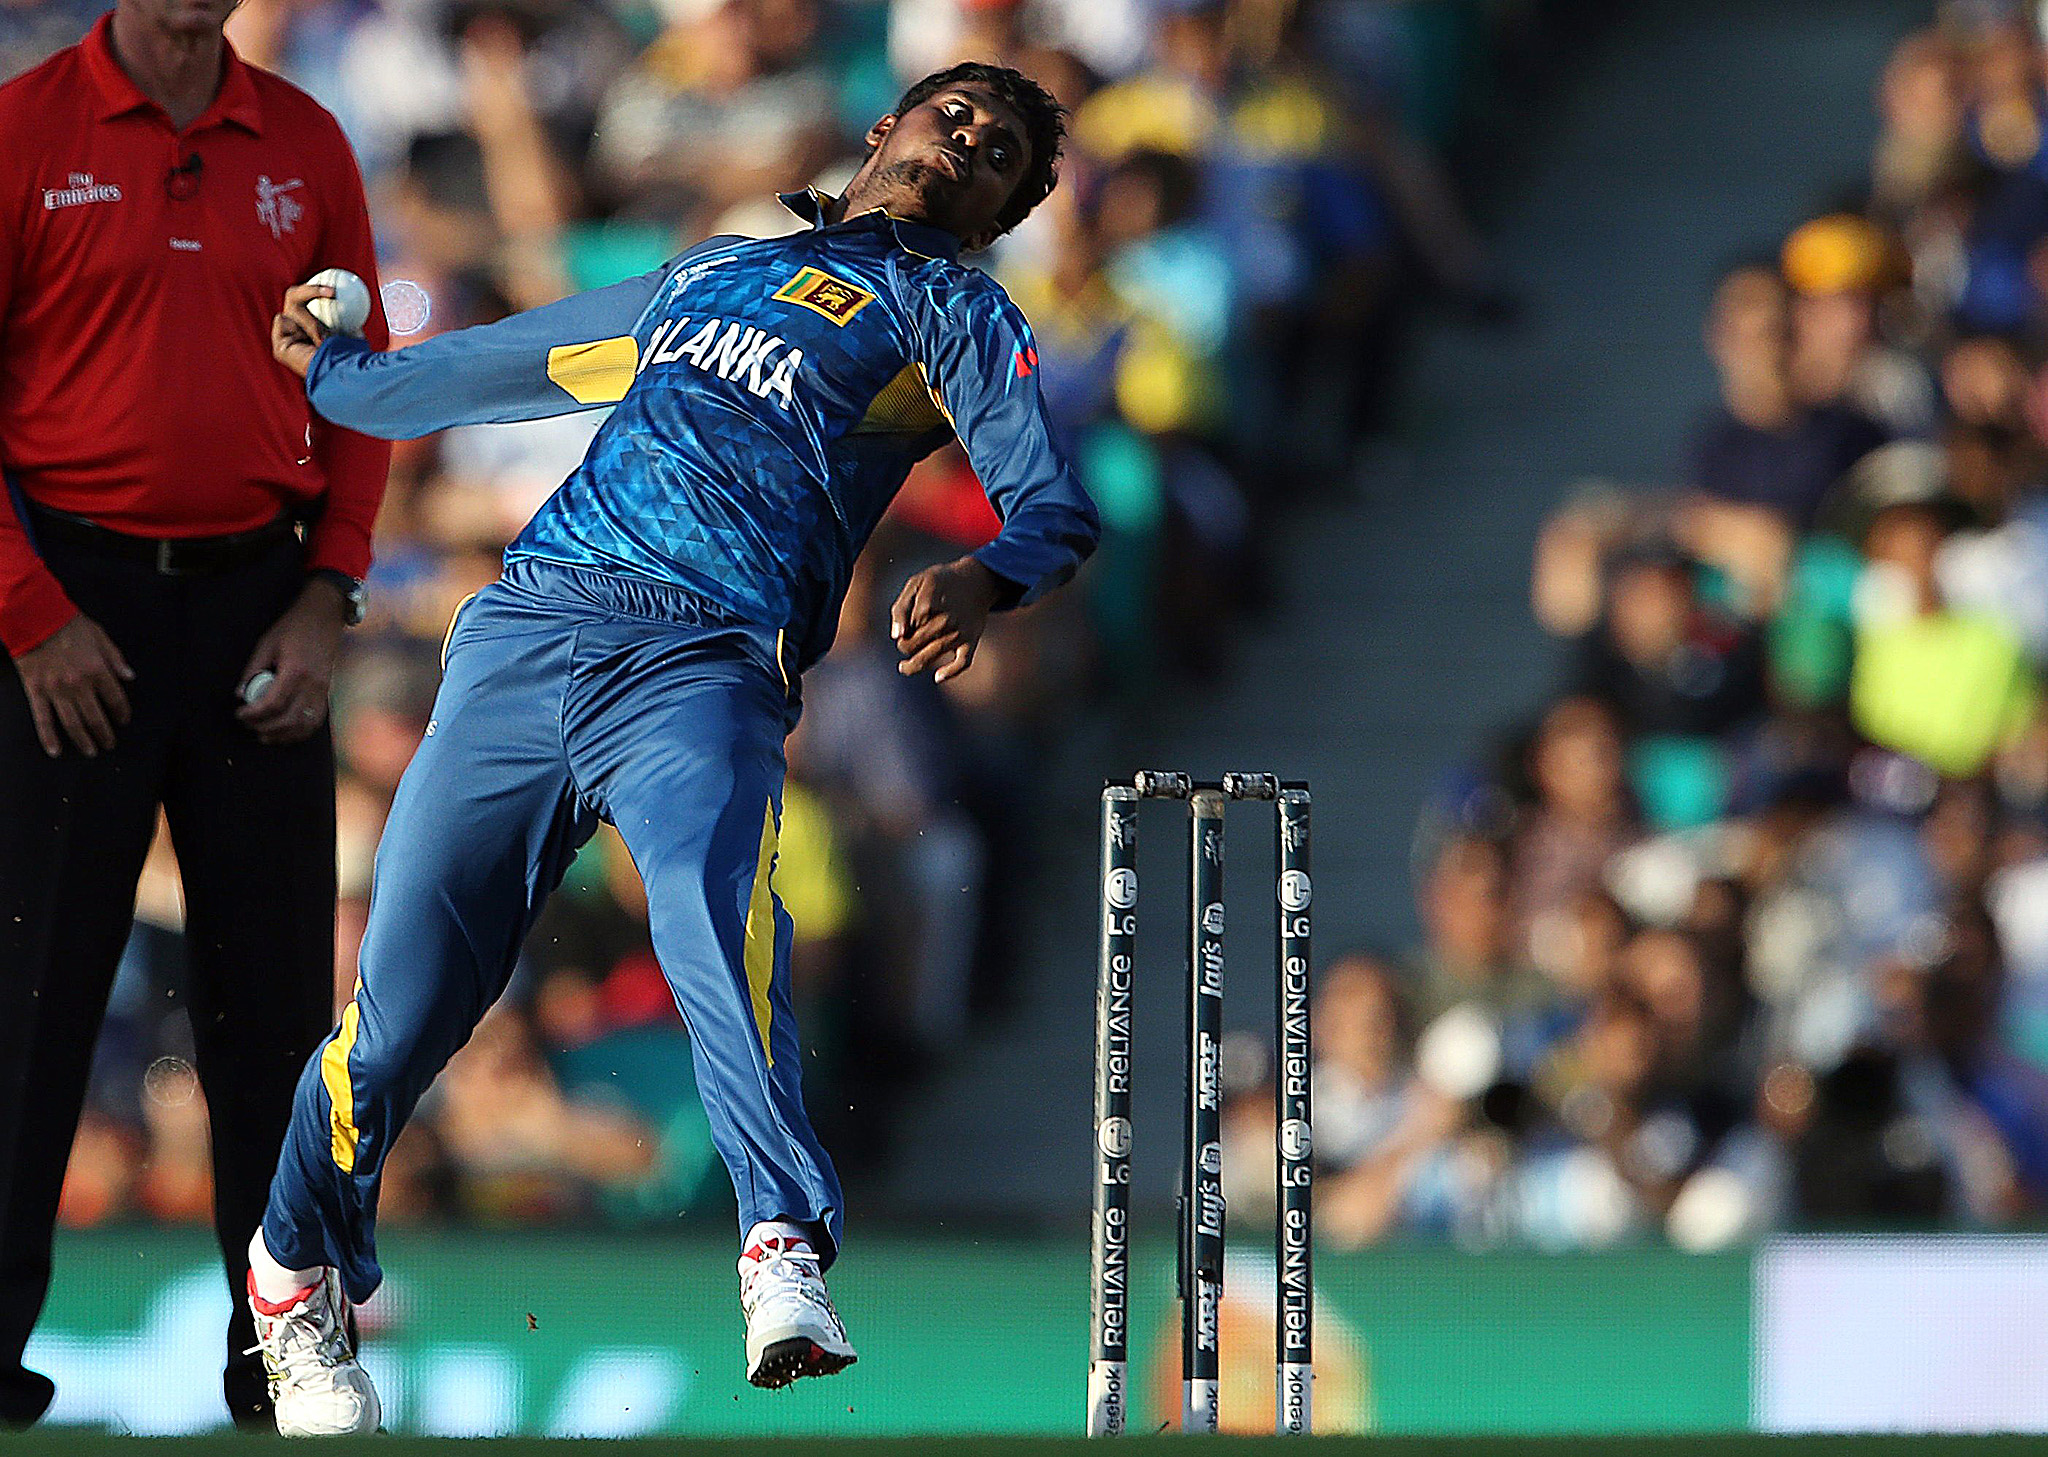 Sri Lanka's Tharindu Kaushal bowls during the Cricket World Cup quarter-final match against South Africa at the SCG...Sri Lanka's Tharindu Kaushal bowls during the Cricket World Cup quarter-final match against South Africa at the Sydney Cricket Ground (SCG) March 18, 2015.     REUTERS/Steve Christo  (AUSTRALIA - Tags: SPORT CRICKET TPX IMAGES OF THE DAY)